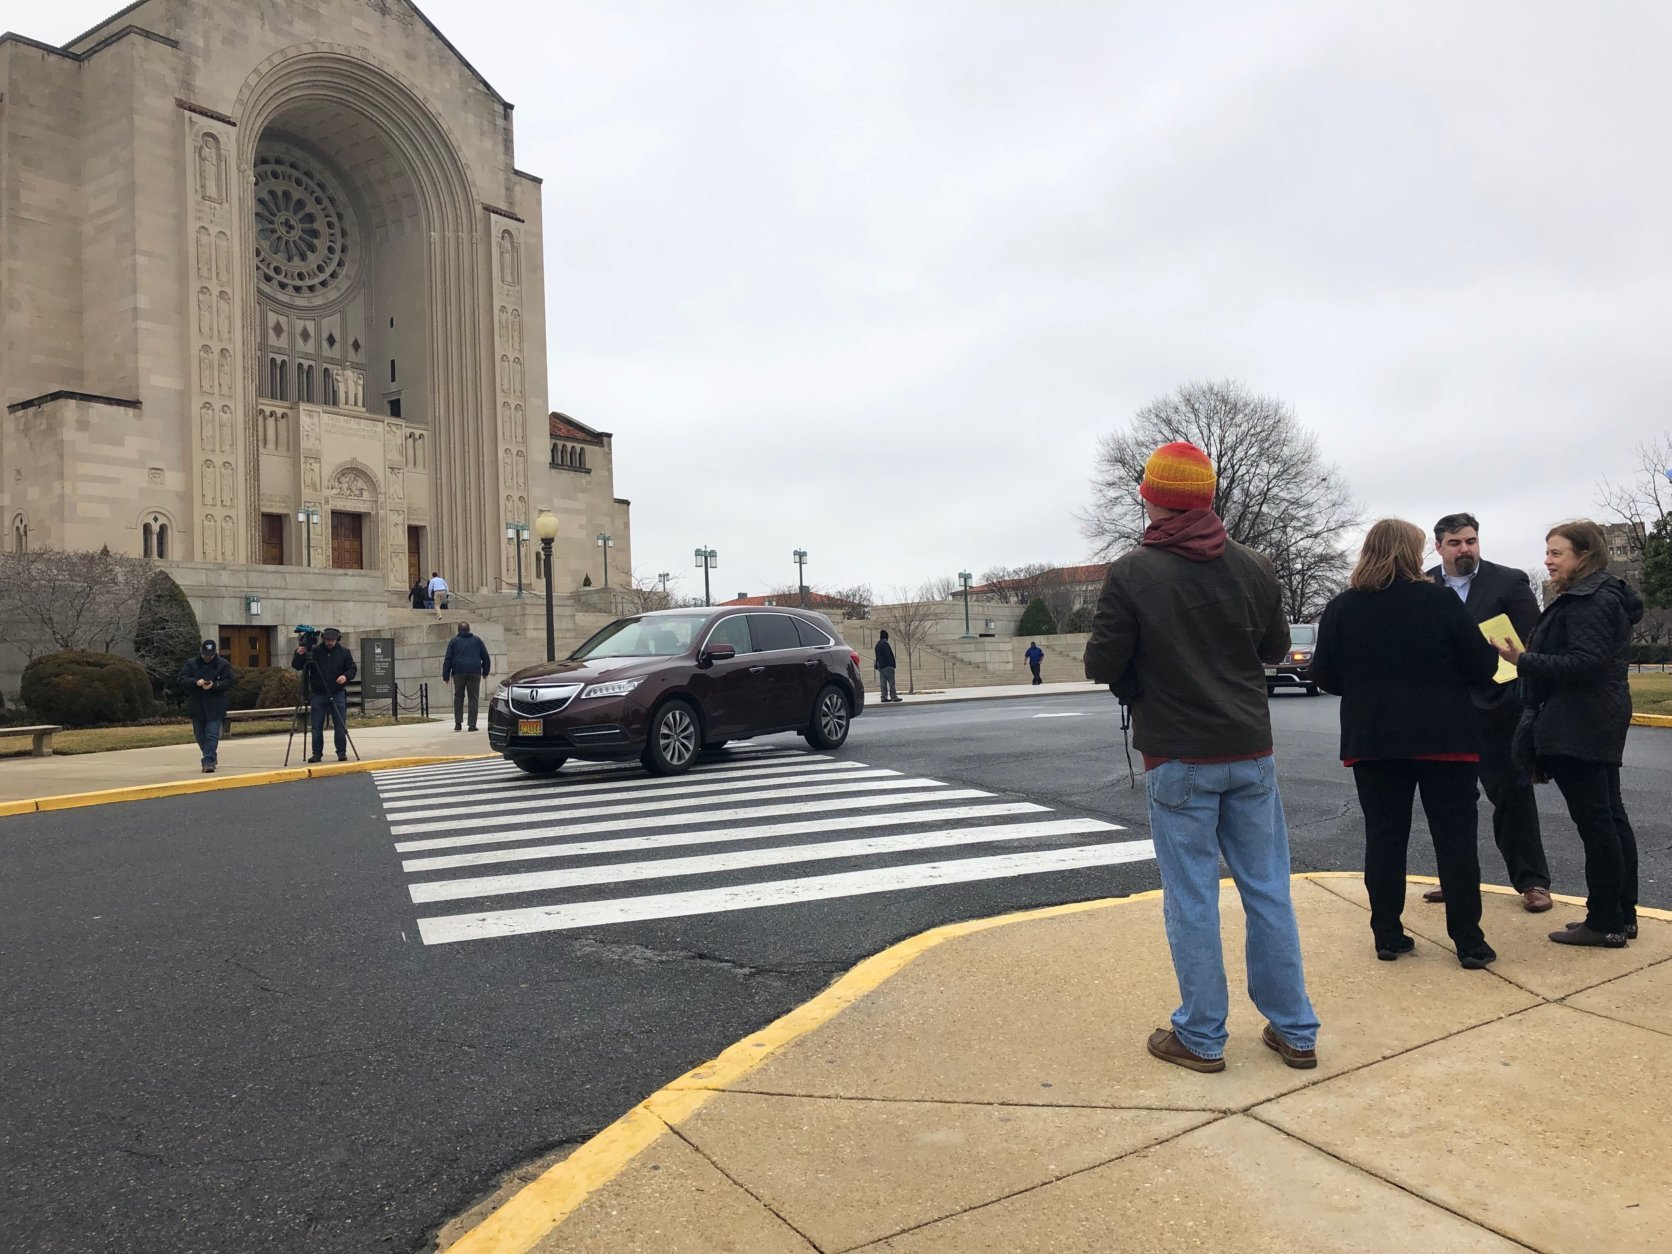 Members of SNAP hand out fliers on how to help survivors of sex abuse at the Basilica of the National Shrine of the Immaculate Conception. (WTOP/Keara Dowd)